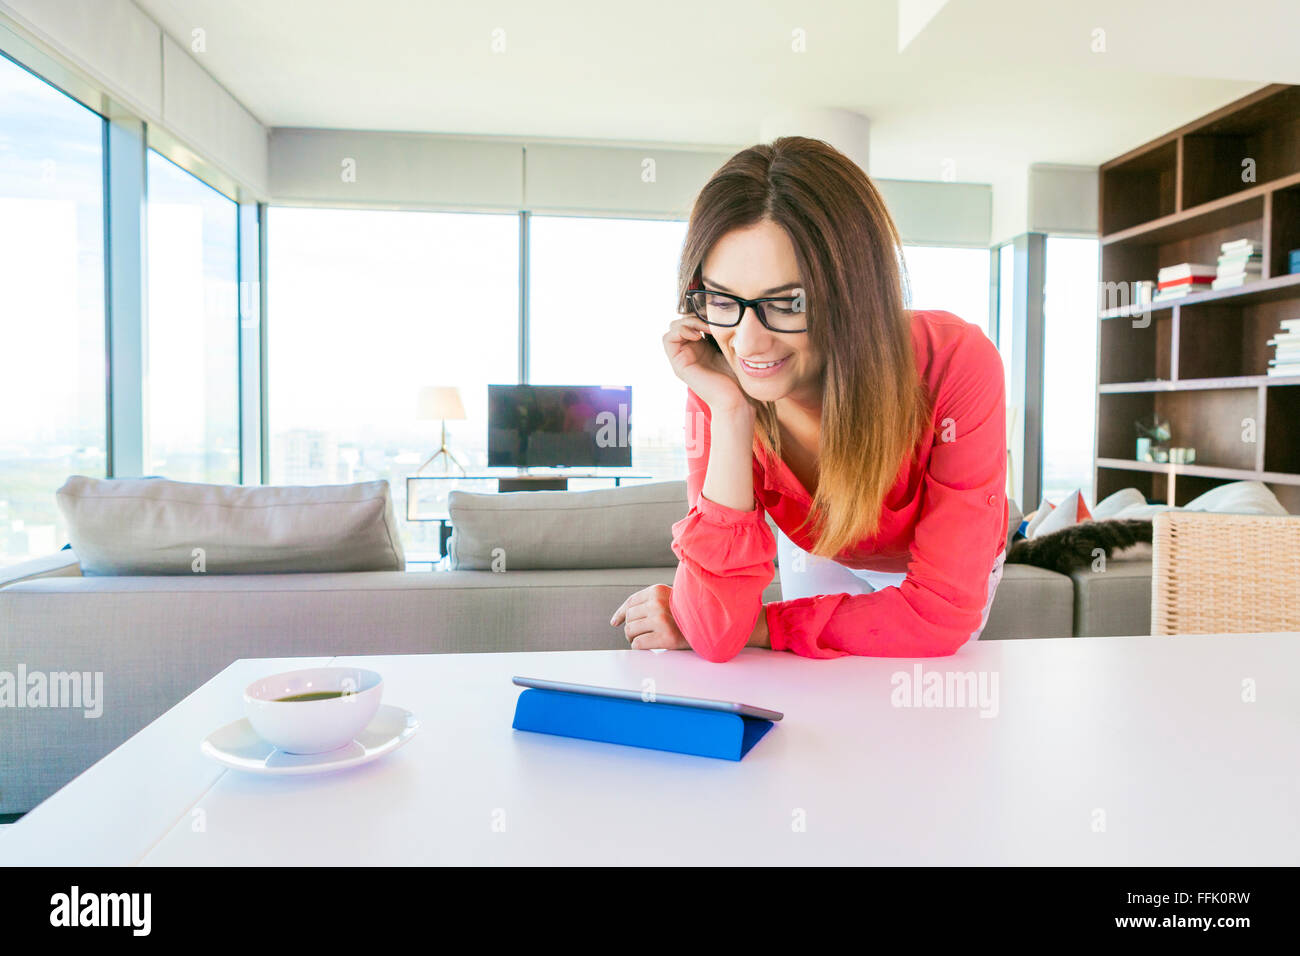 Woman in apartment surfing the net with digital tablet - Stock Image